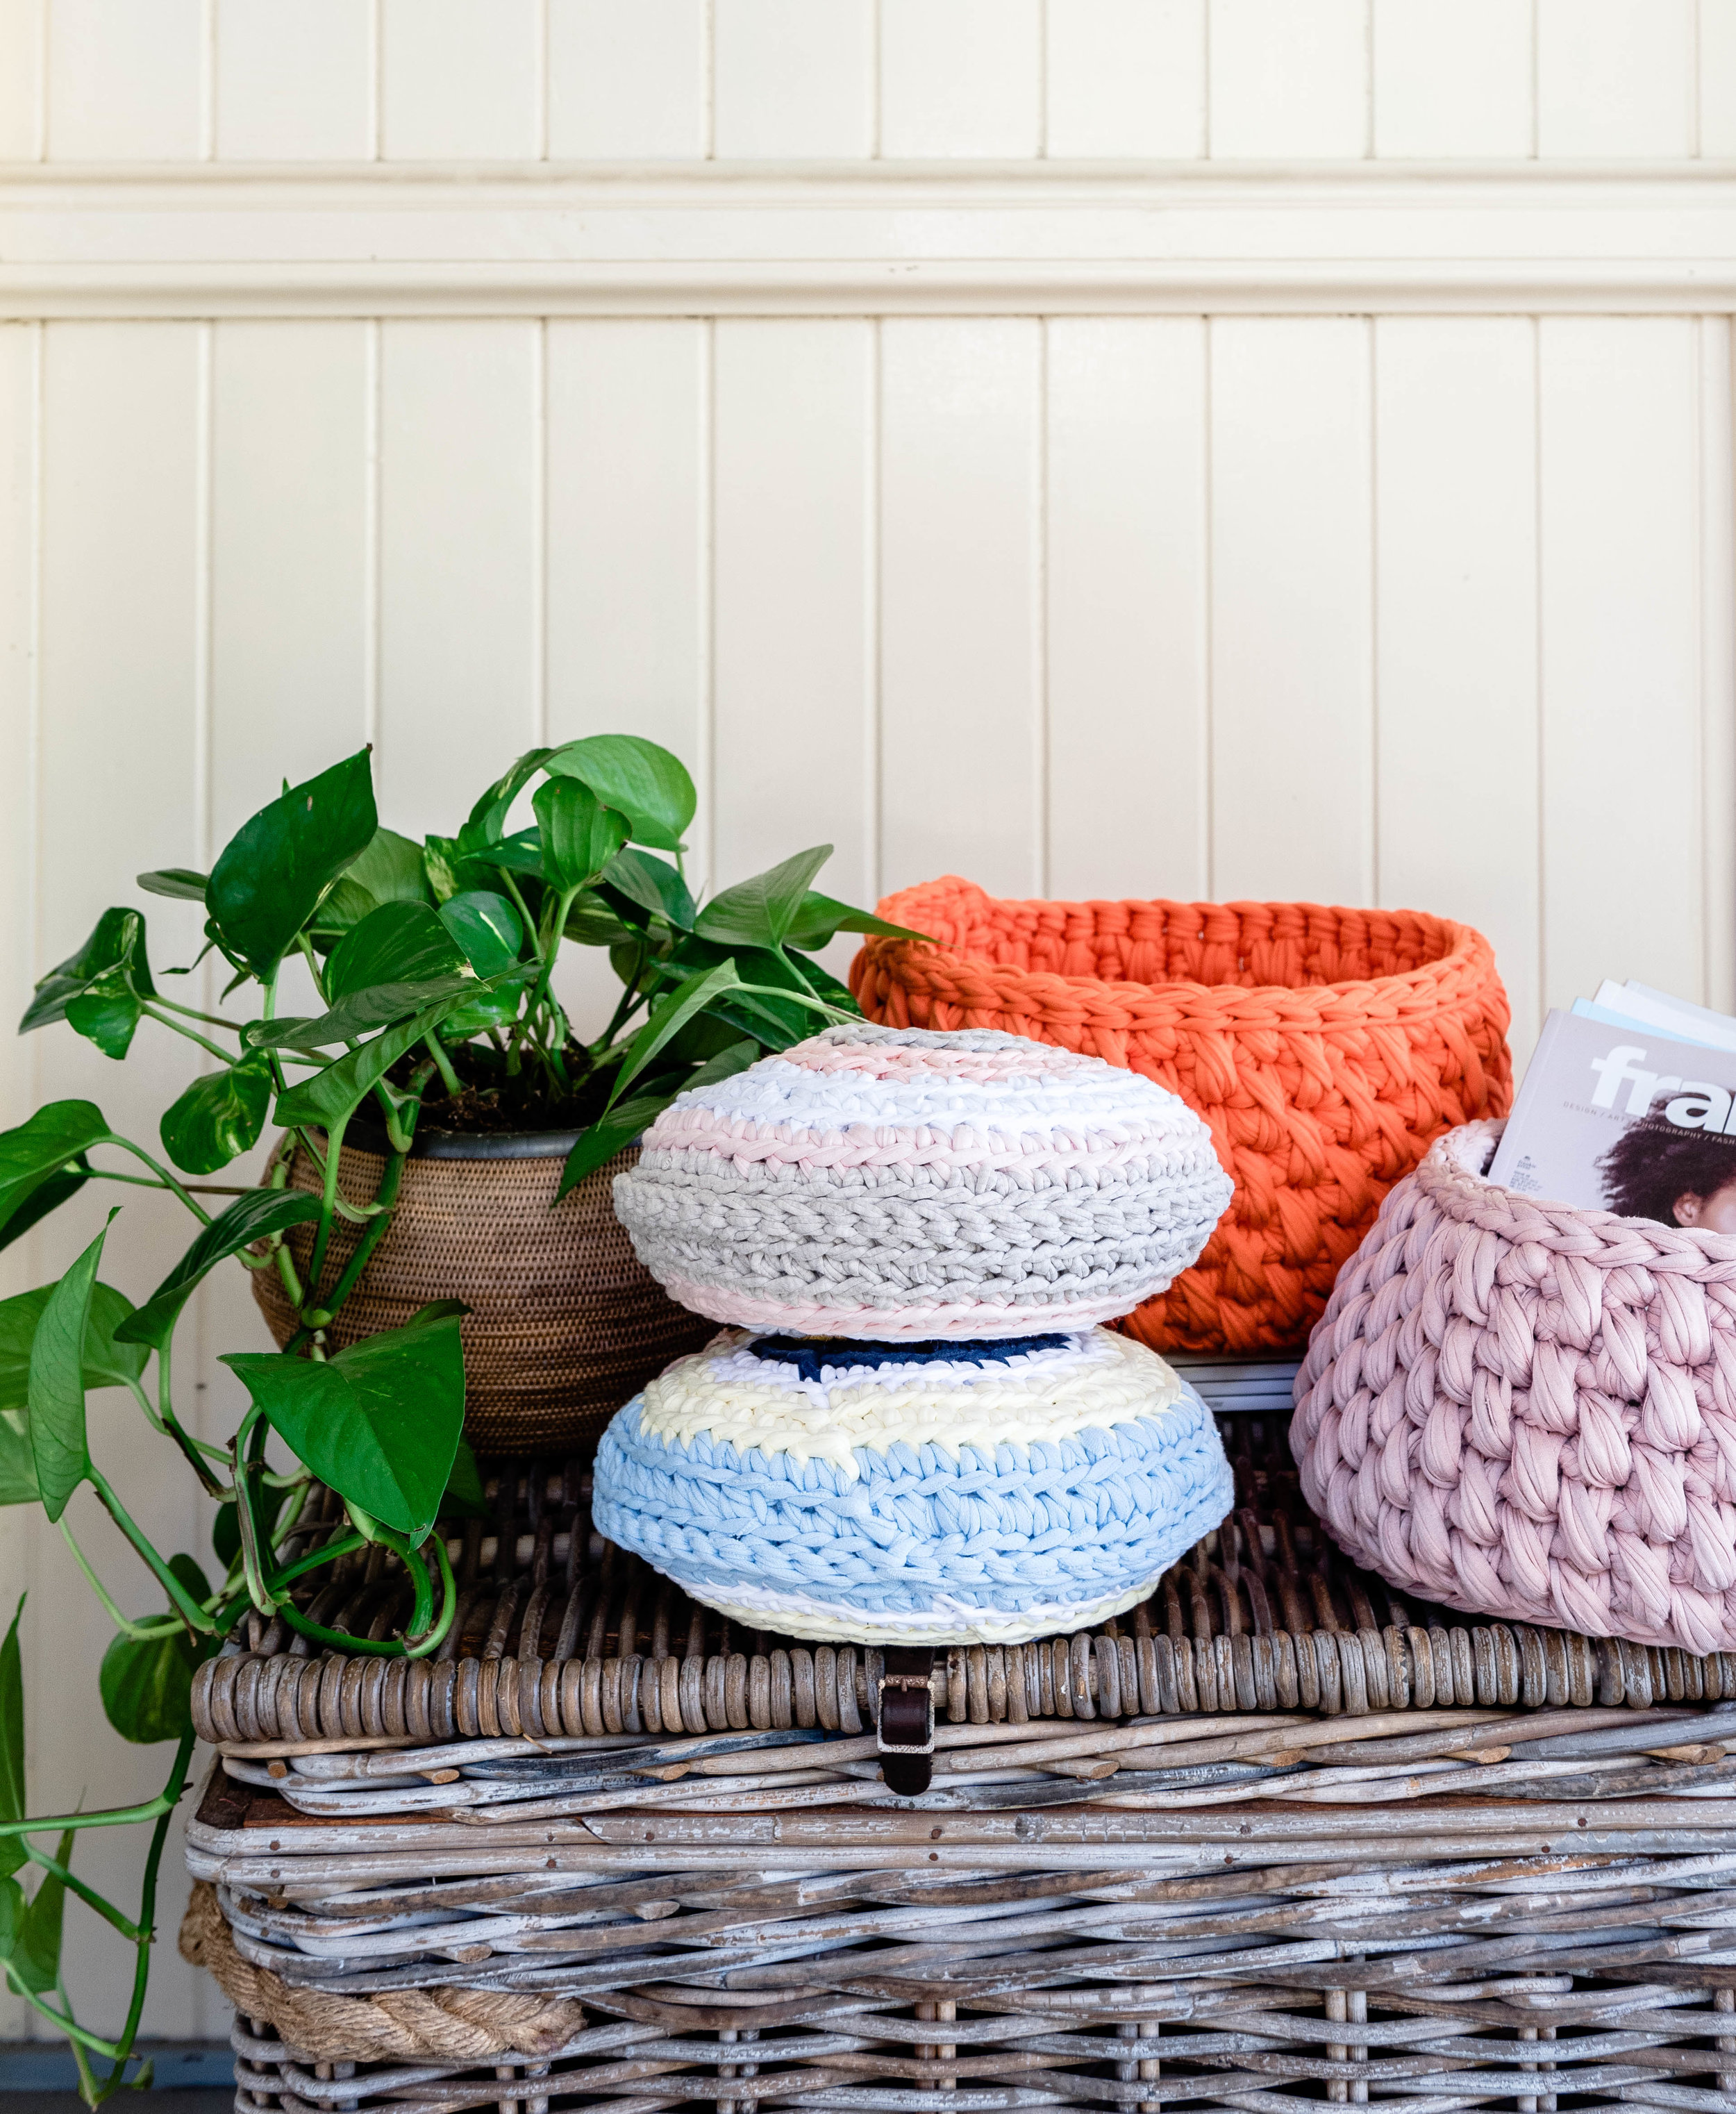 Hand crocheted cushions and baskets made in Germany by Lumikello out of recycled materials